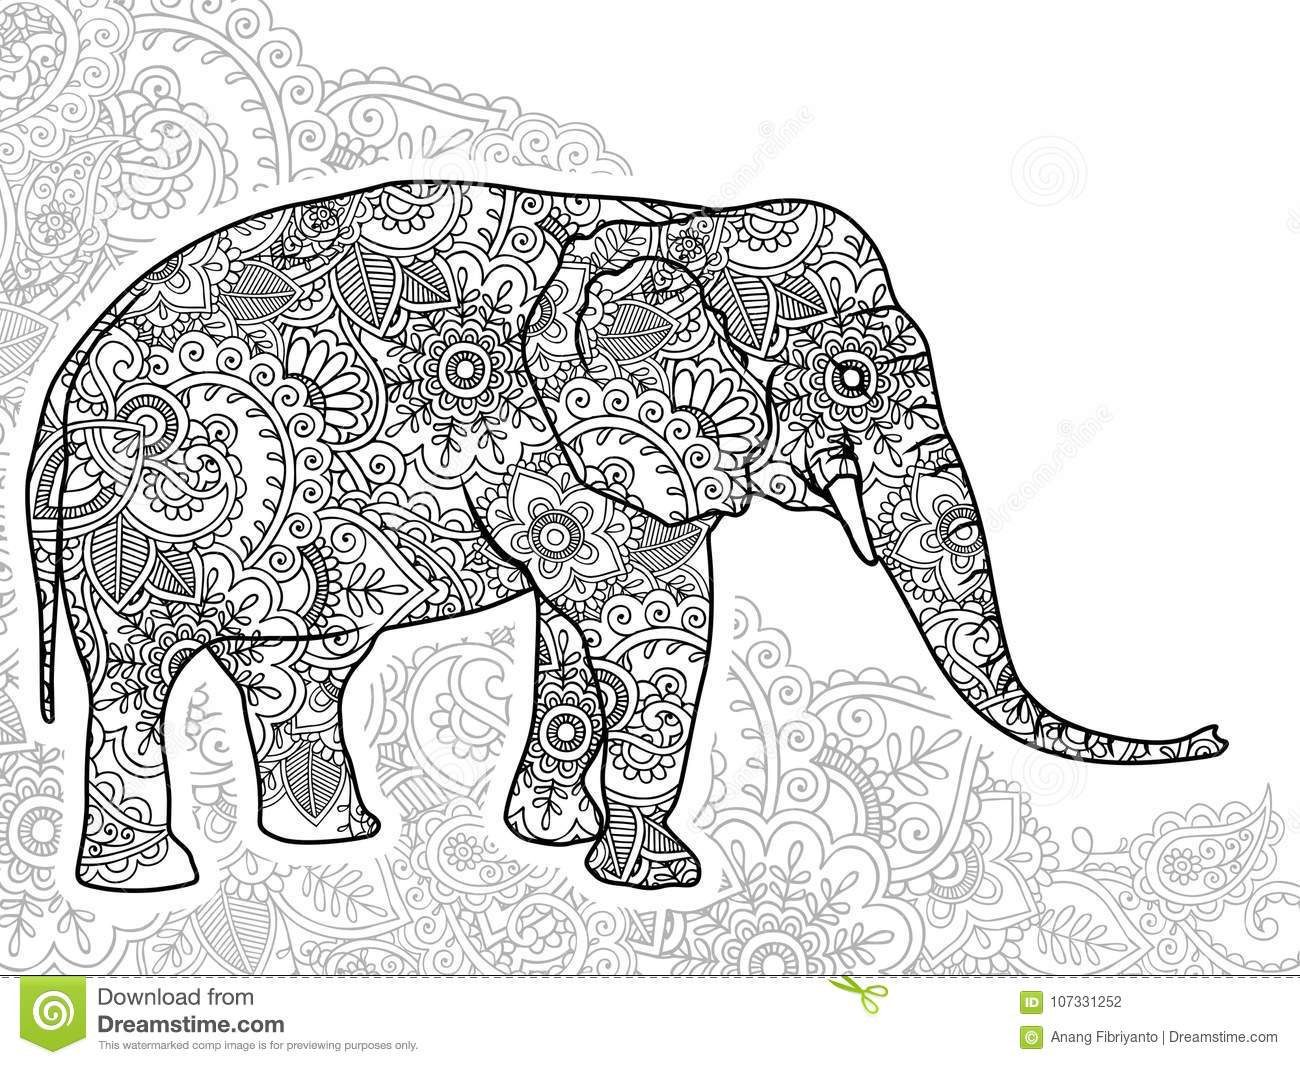 Download Black And White Elephant Hand Drawn Doodle Animal Paisley Adult Stress Release Coloring Page Zentangle